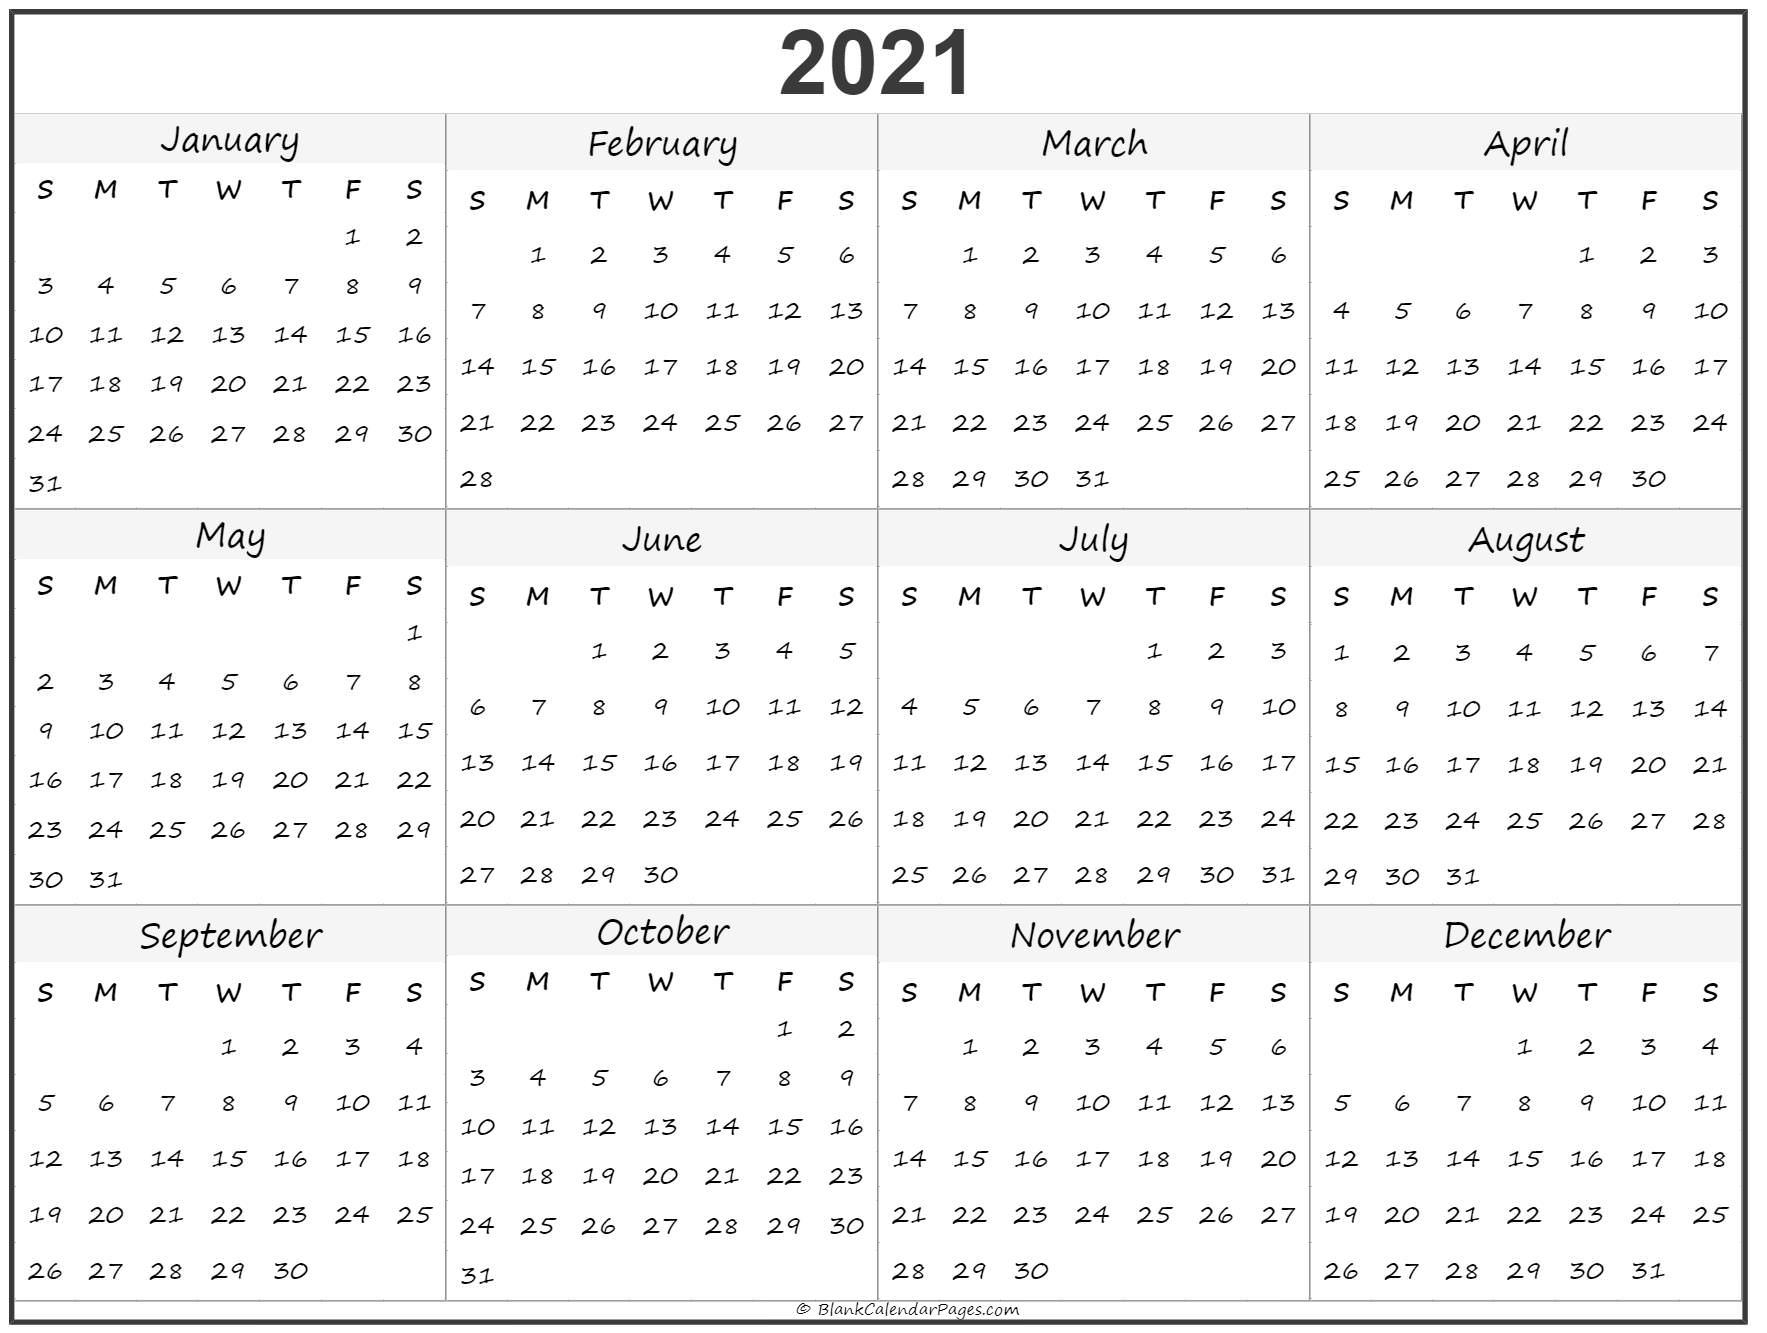 2021 Year Calendar | Yearly Printable intended for 2021 Writable Calendars By Month